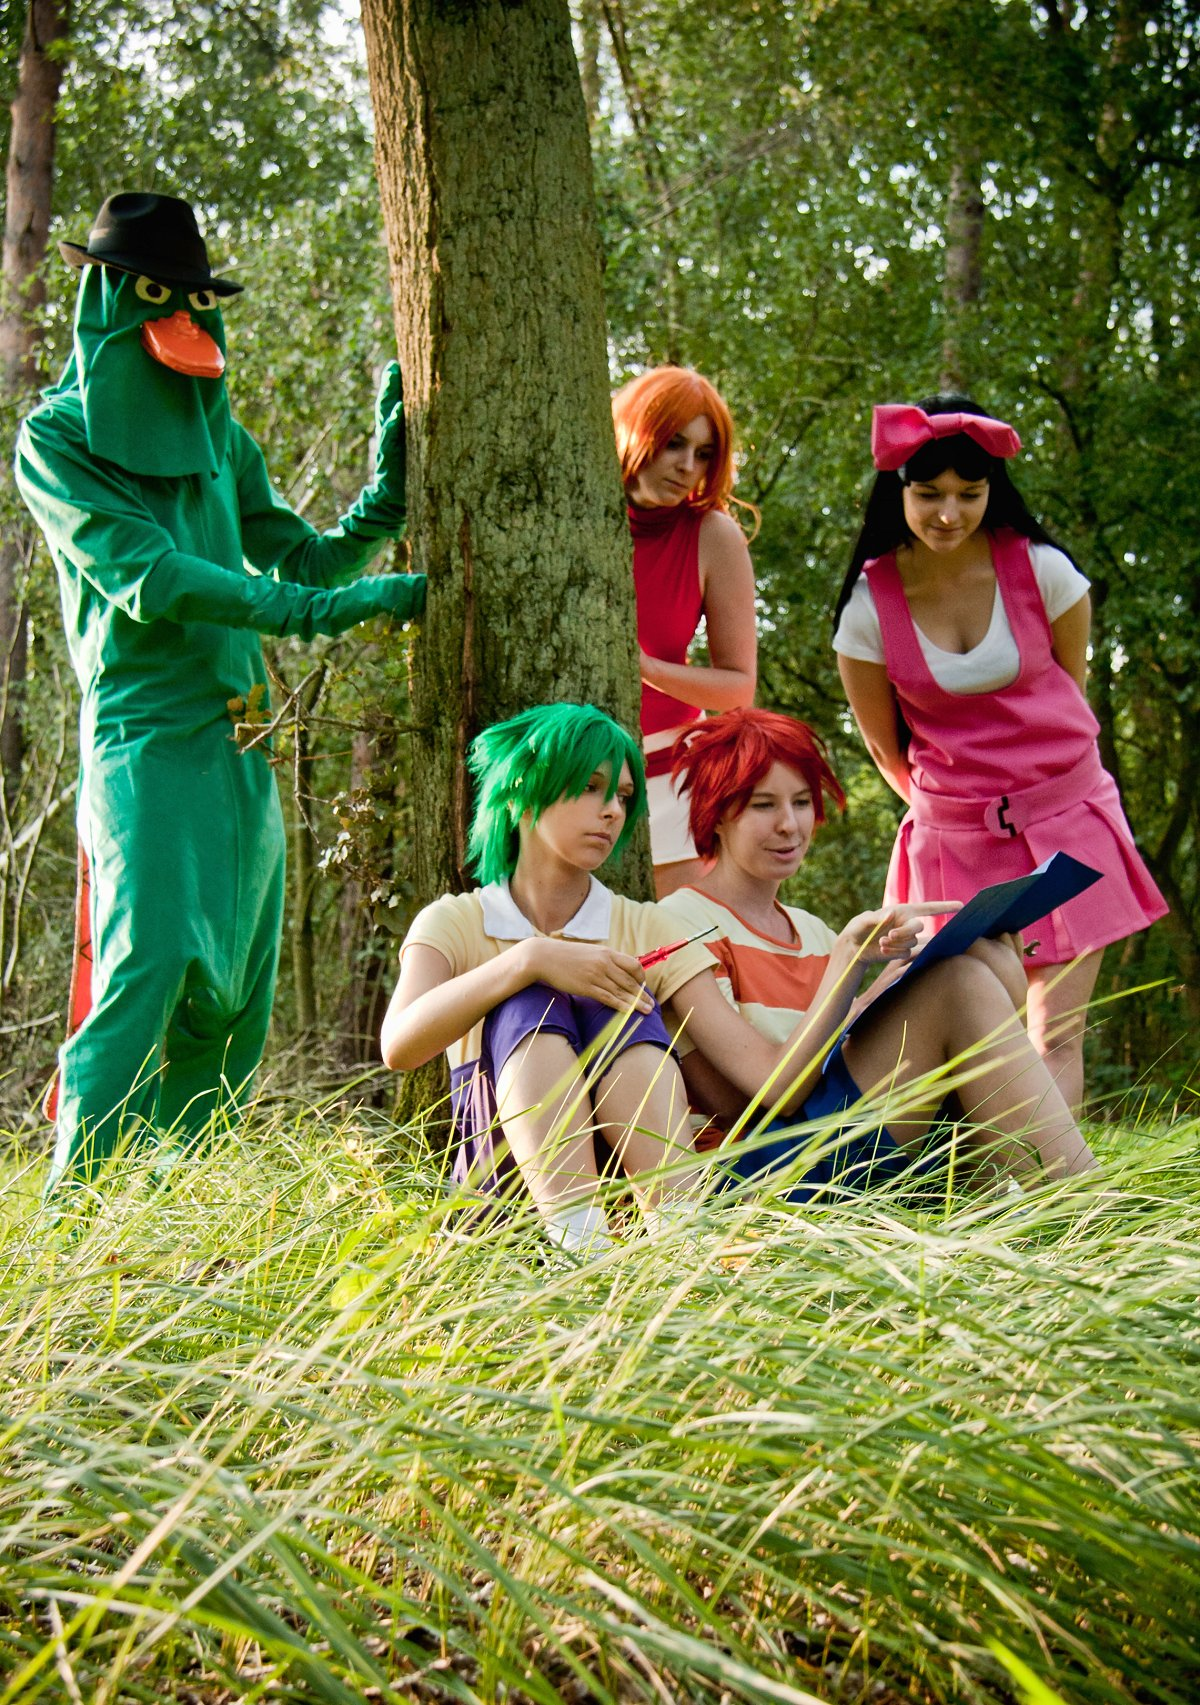 Phineas and Ferb cosplay group